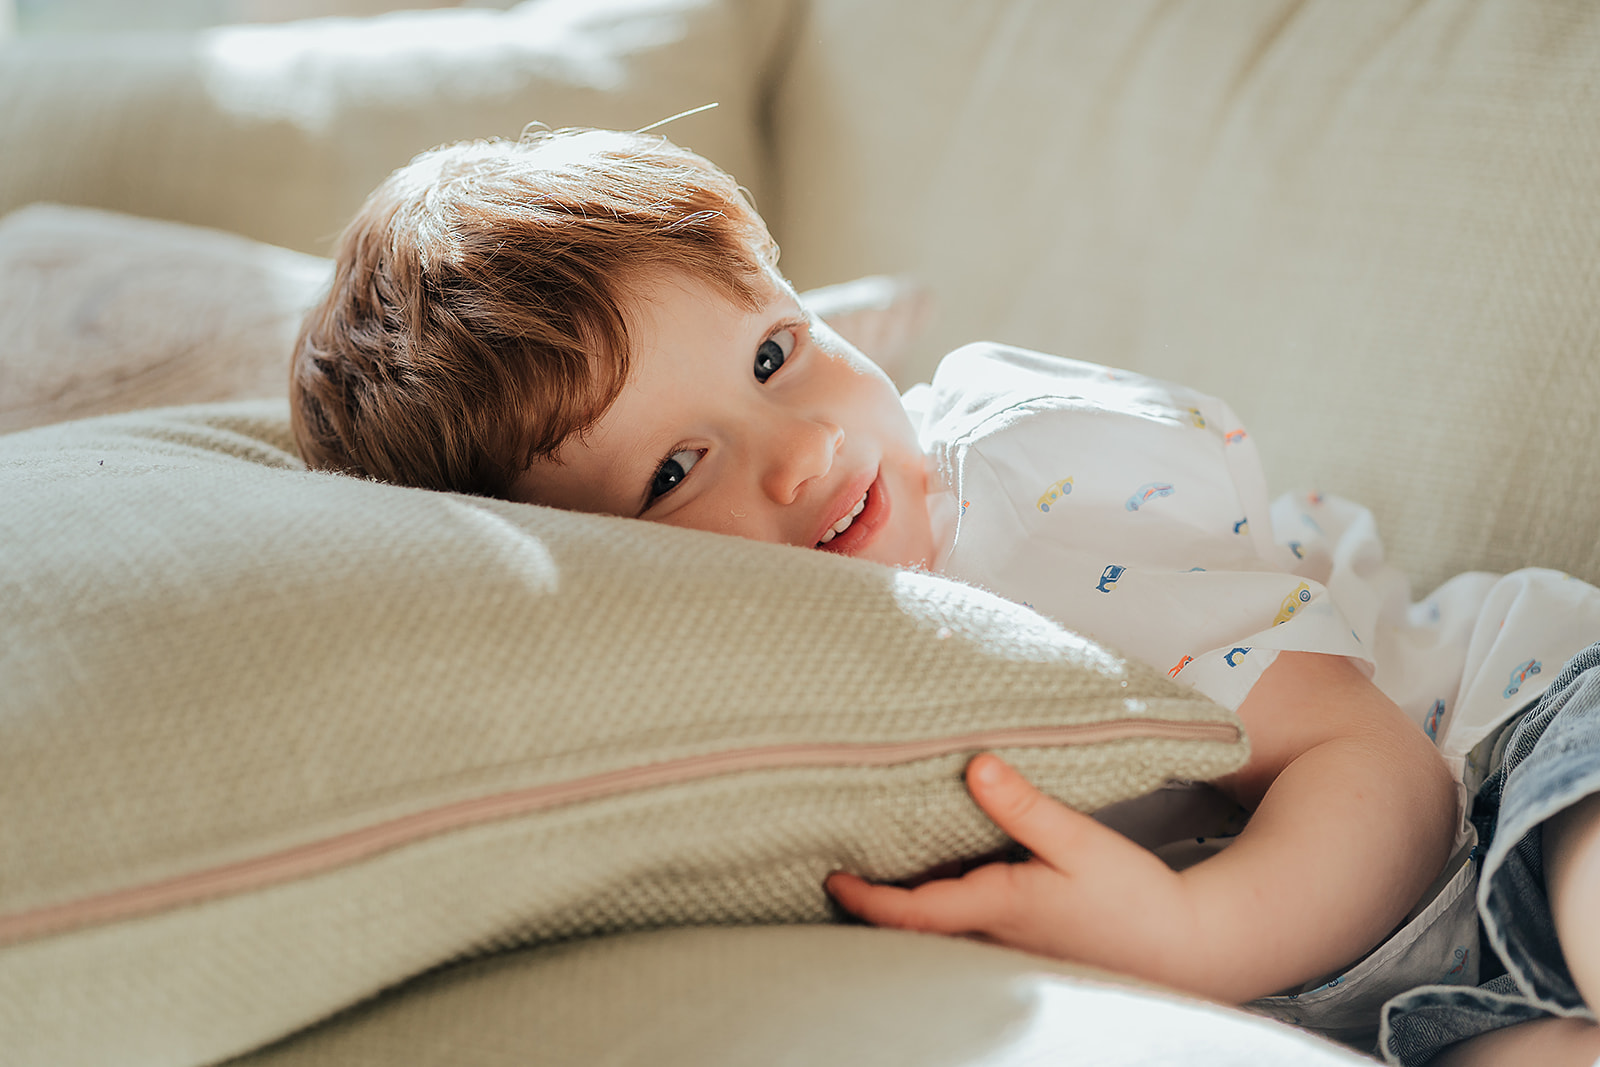 little boy lying down on a sofa, head on a pillow